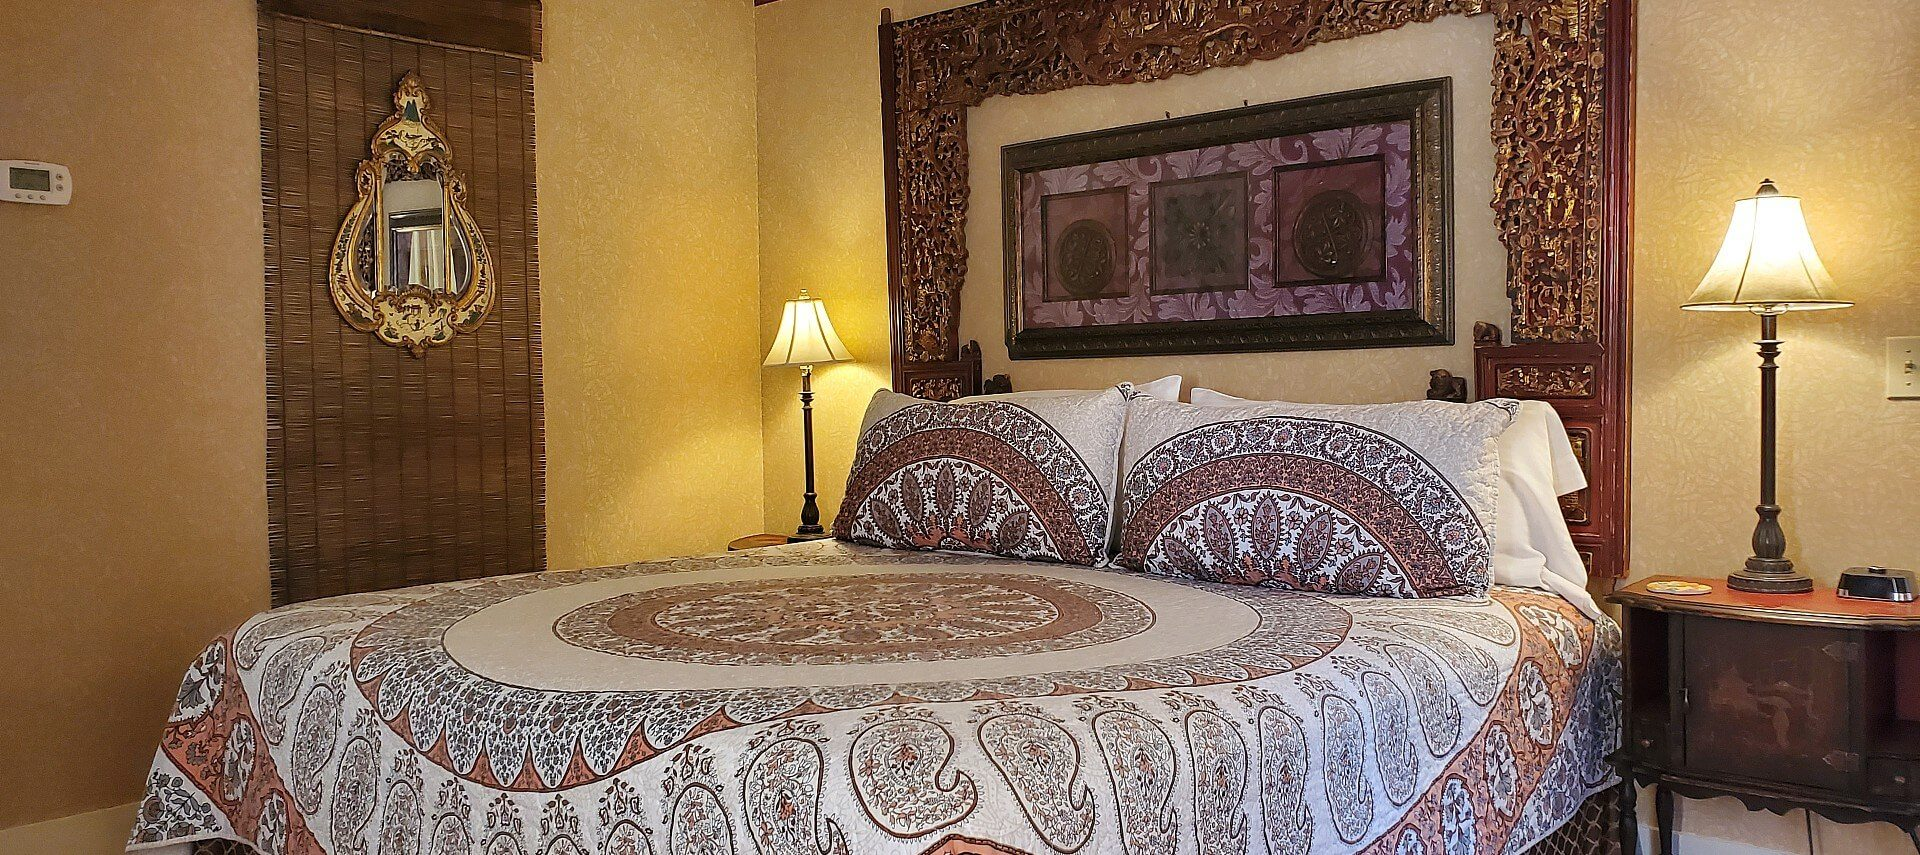 Bedroom with quilt-covered bed, unique wooden headboard and bedside tables with lamps